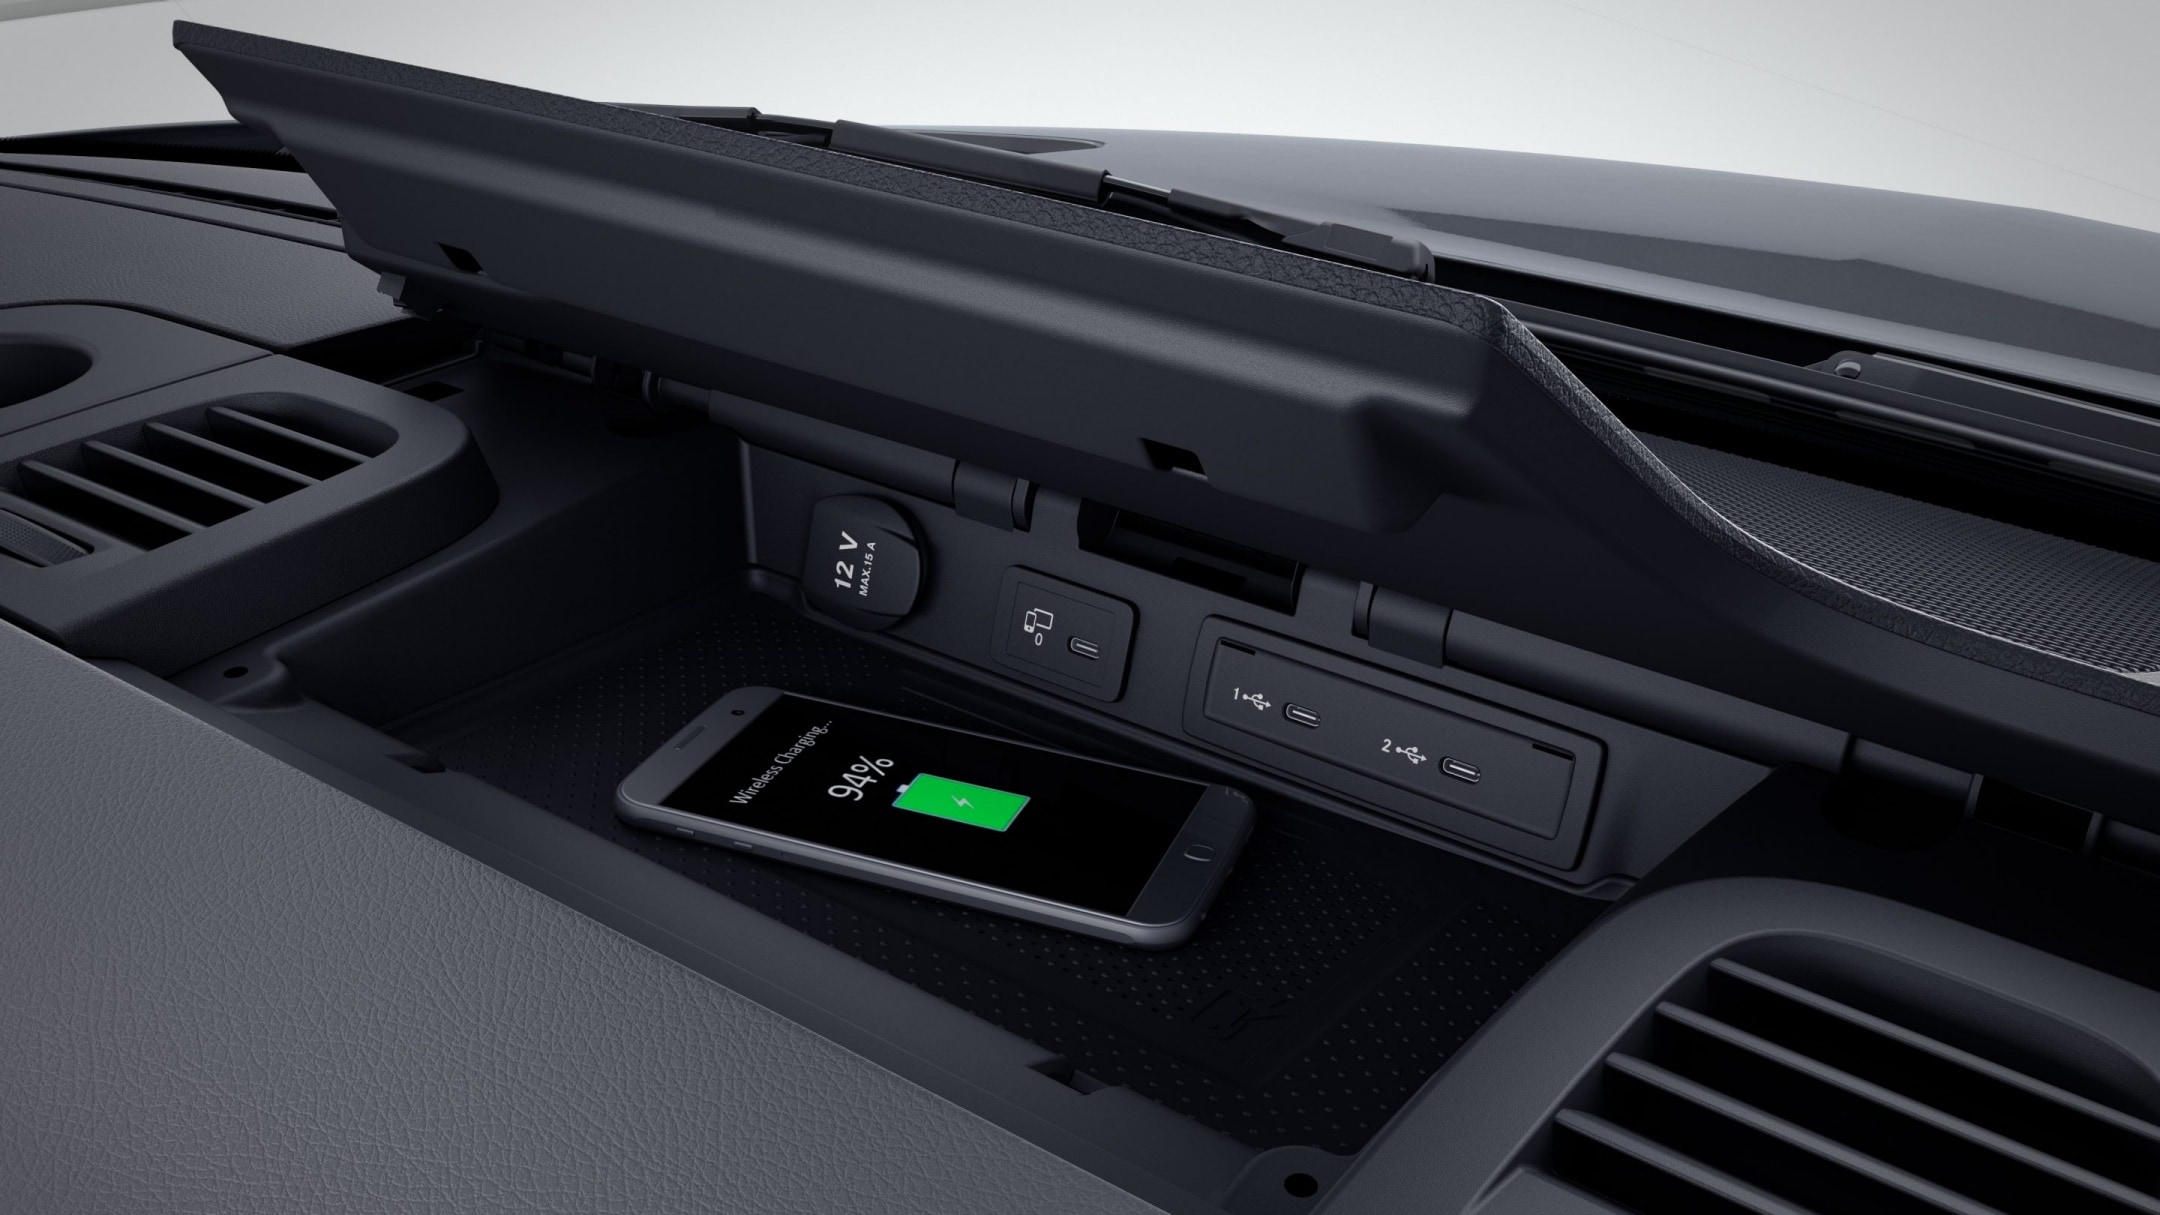 Sprinter Chassis Cab, stowage compartment for smartphones including wireless charging